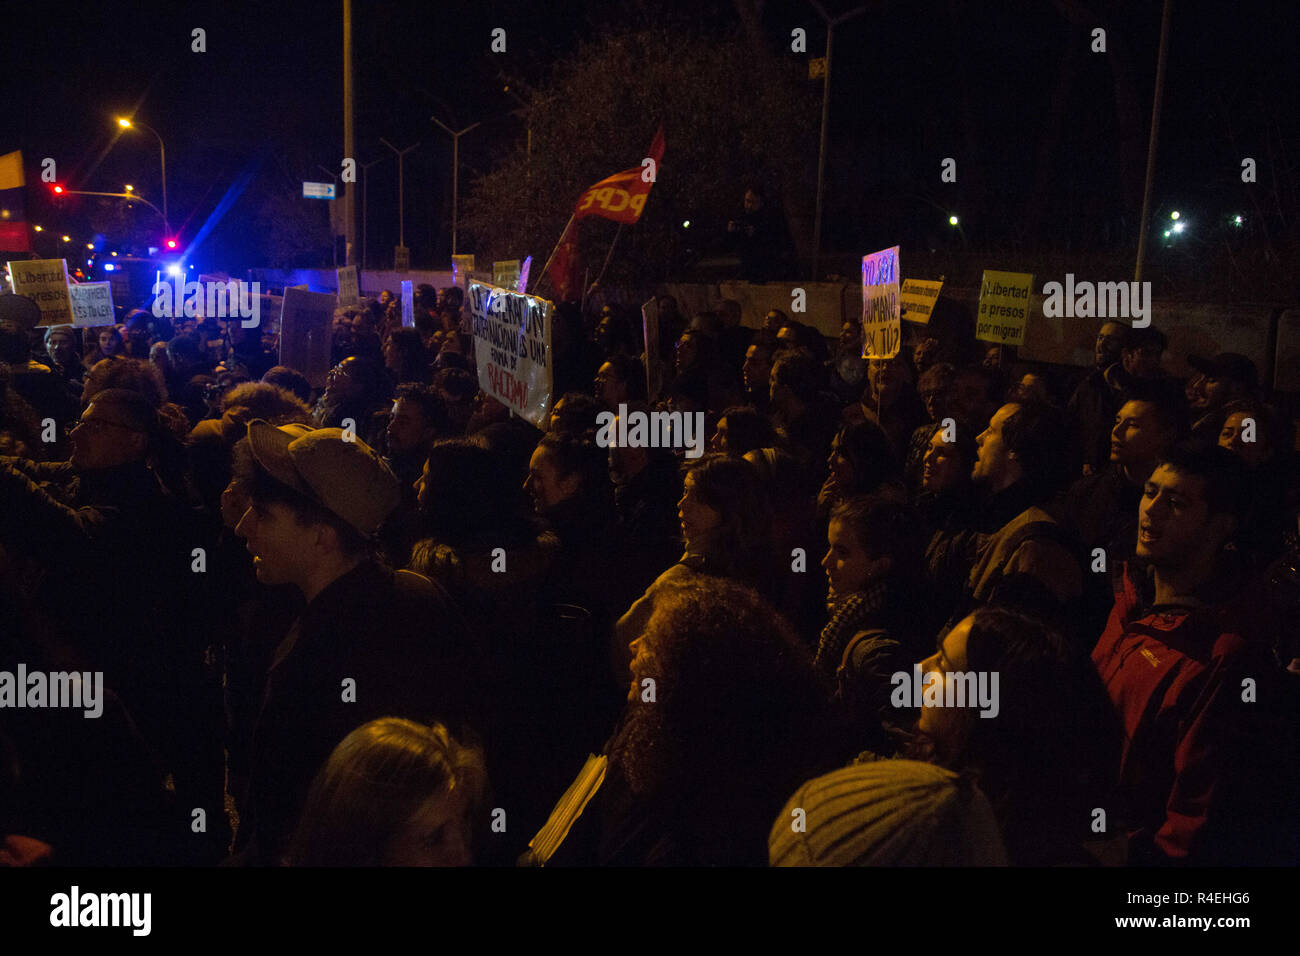 Madrid, Spain. 27th Nov, 2018. Hundreds of protesters are seen gathered in front of the Aluche Immigrant Detention Centre during the protest.Demonstration was held in front of the Immigration Detention Centre to demand for the closure of this centre and the rest in Europe for treating undocumented immigrants as criminals, depriving them of freedom, against Human Rights and for the racist treatment in them. Credit: Lito Lizana/SOPA Images/ZUMA Wire/Alamy Live News - Stock Image